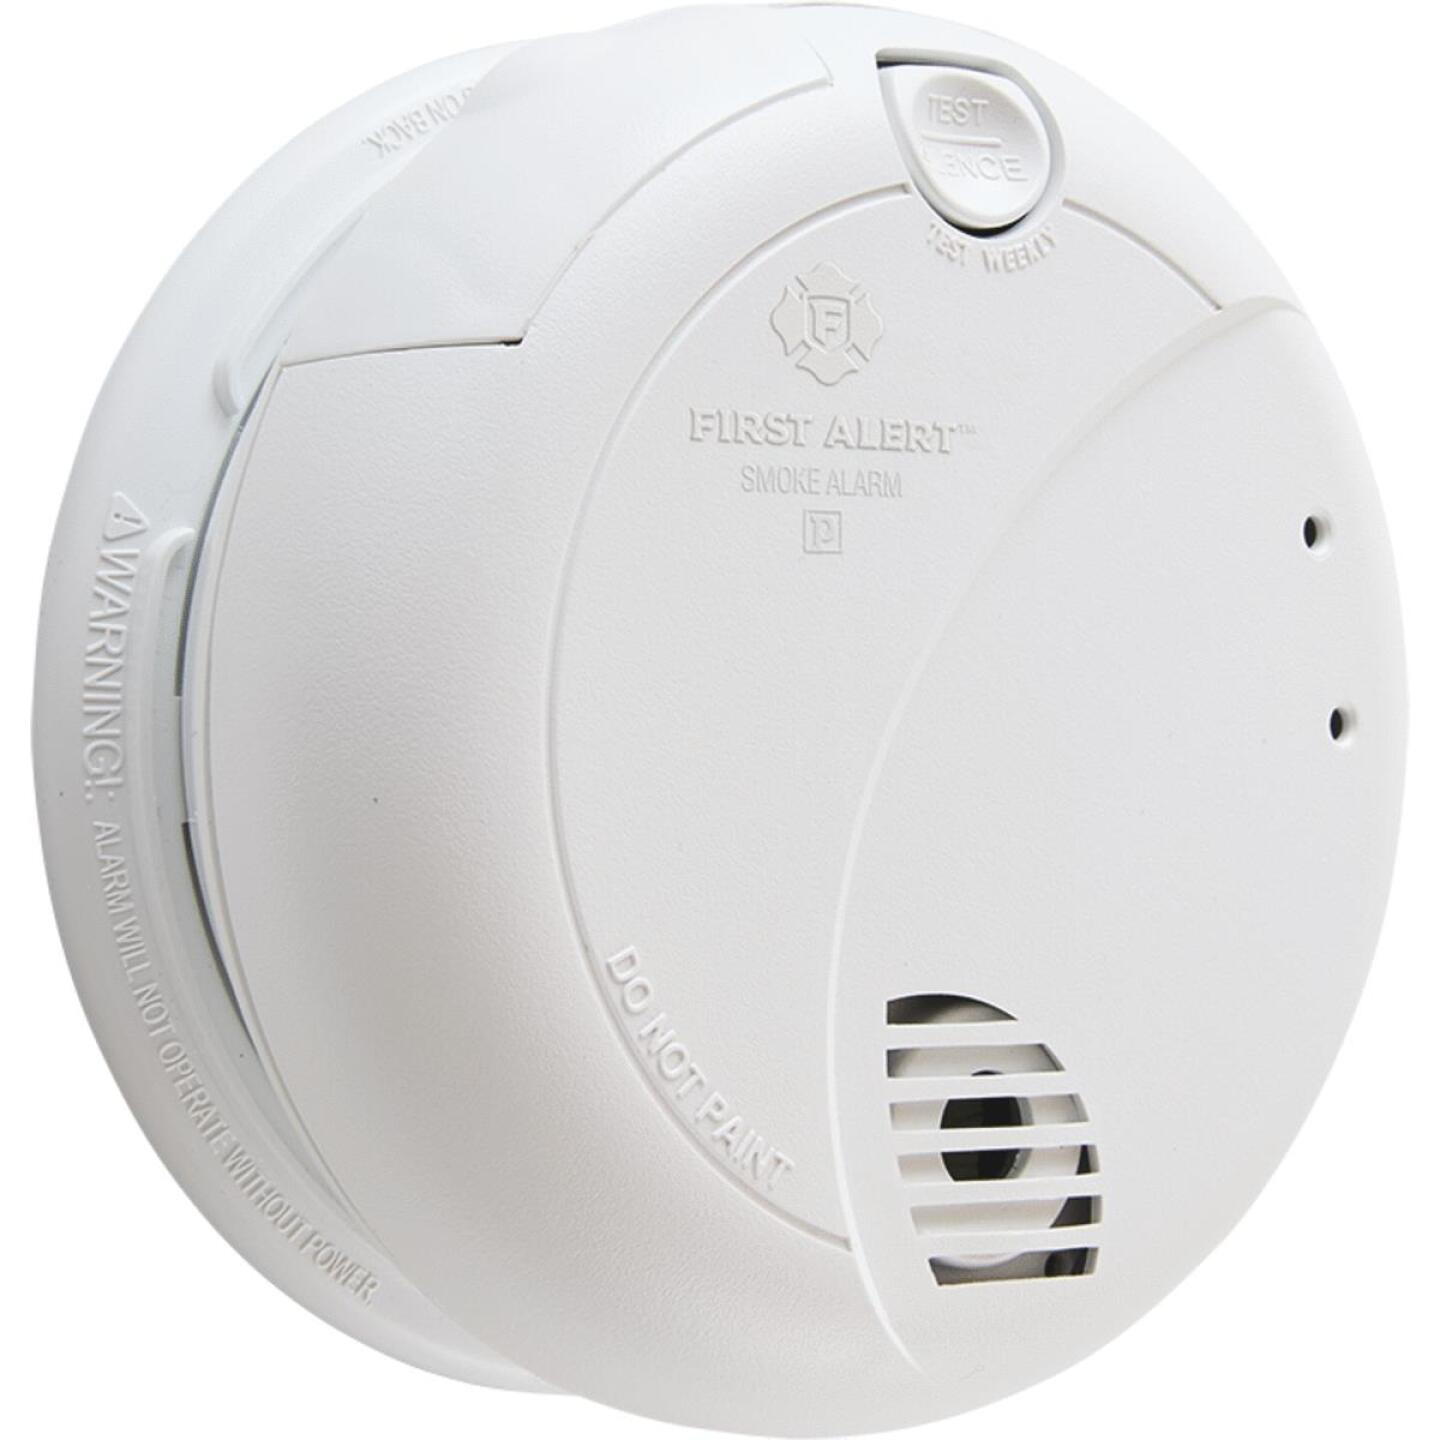 First Alert Plug-In 120V Photoelectric Smoke Alarm with Battery Back-Up Image 1